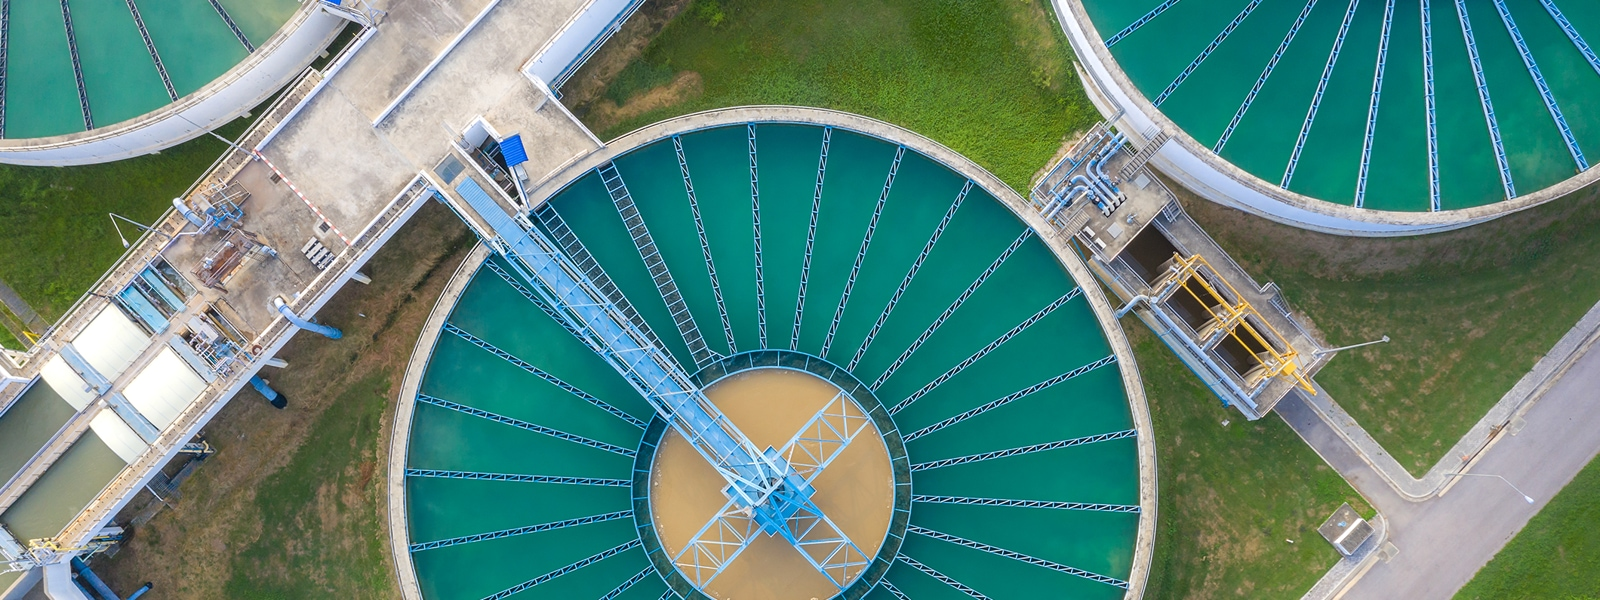 A water treatment plant, viewed from above.